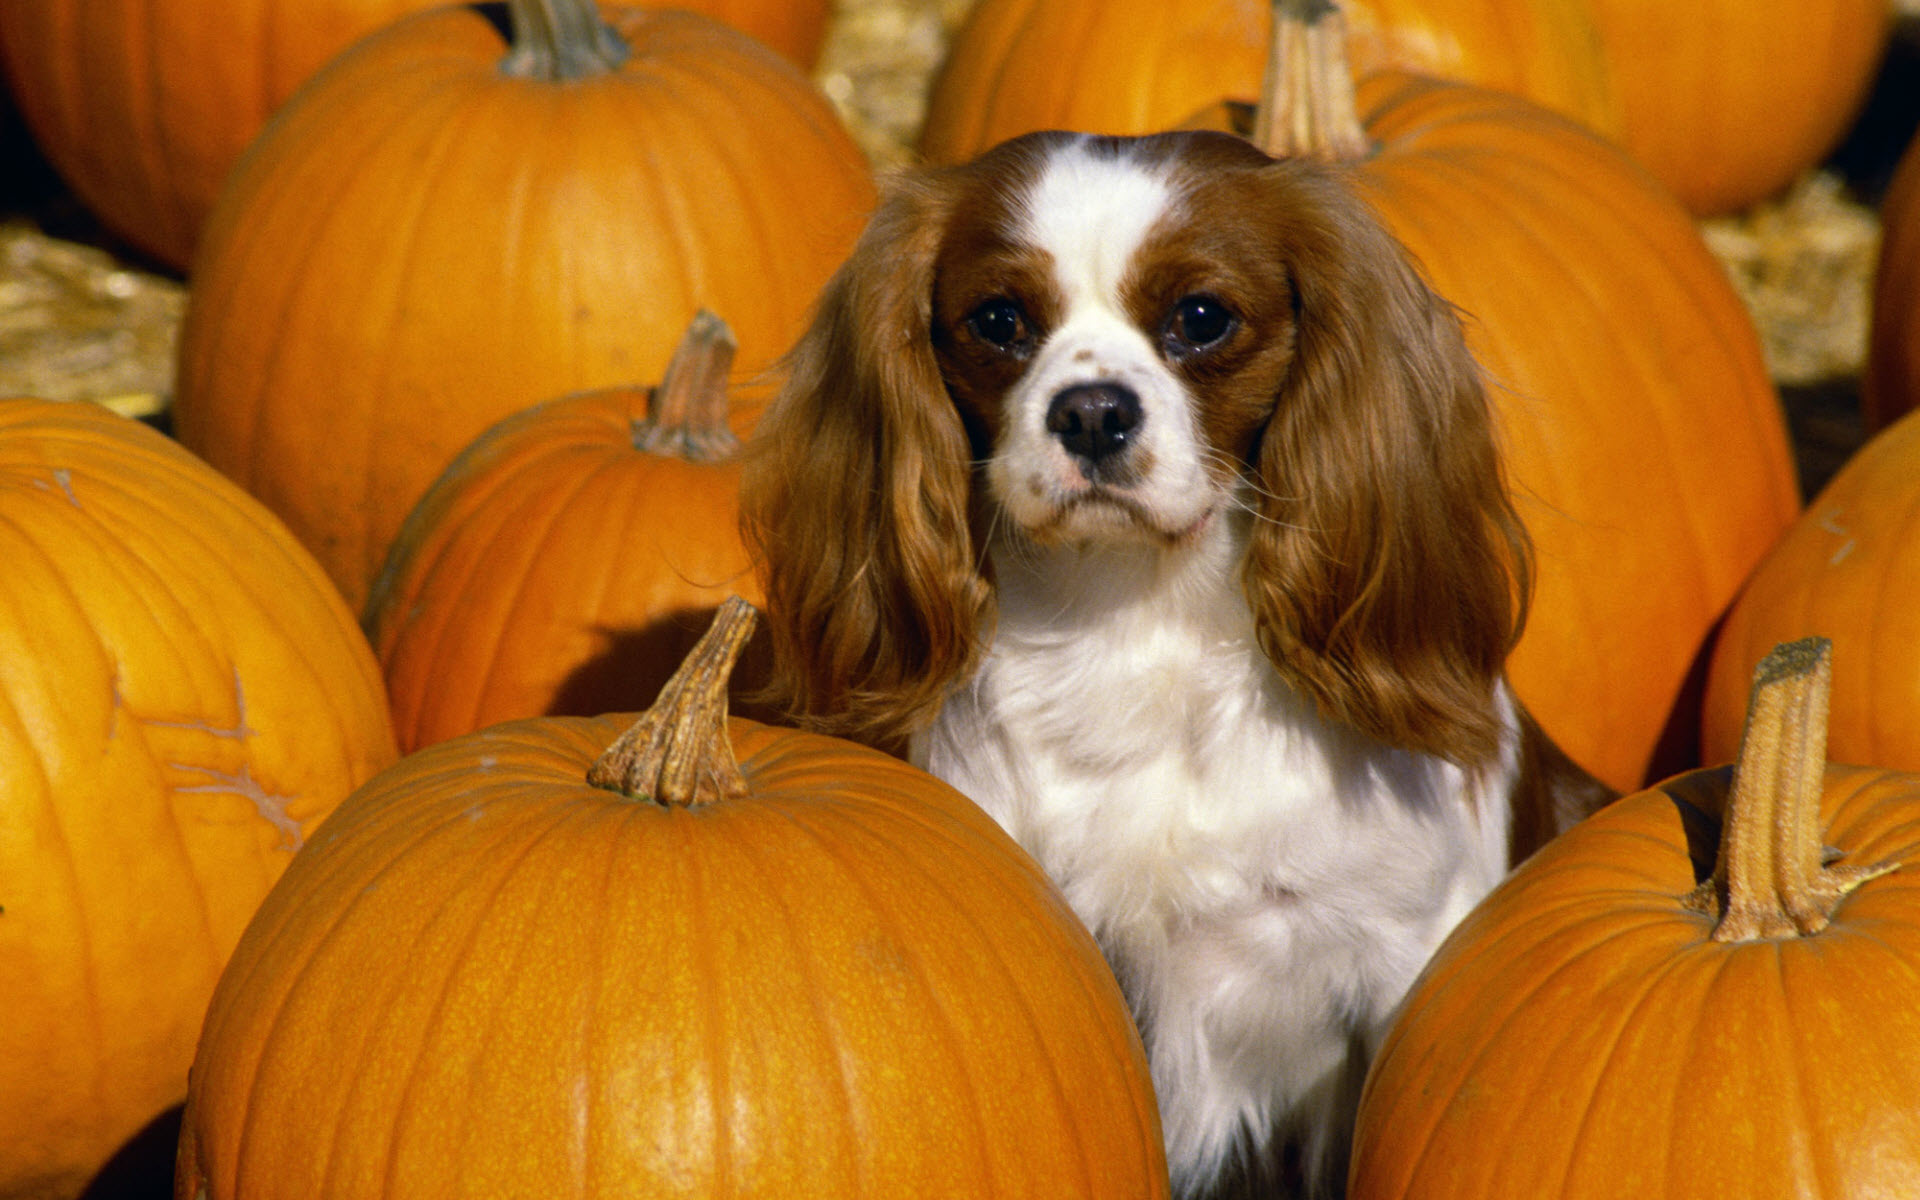 Cavalier King Charles Spaniel dog and pumpkins wallpaper